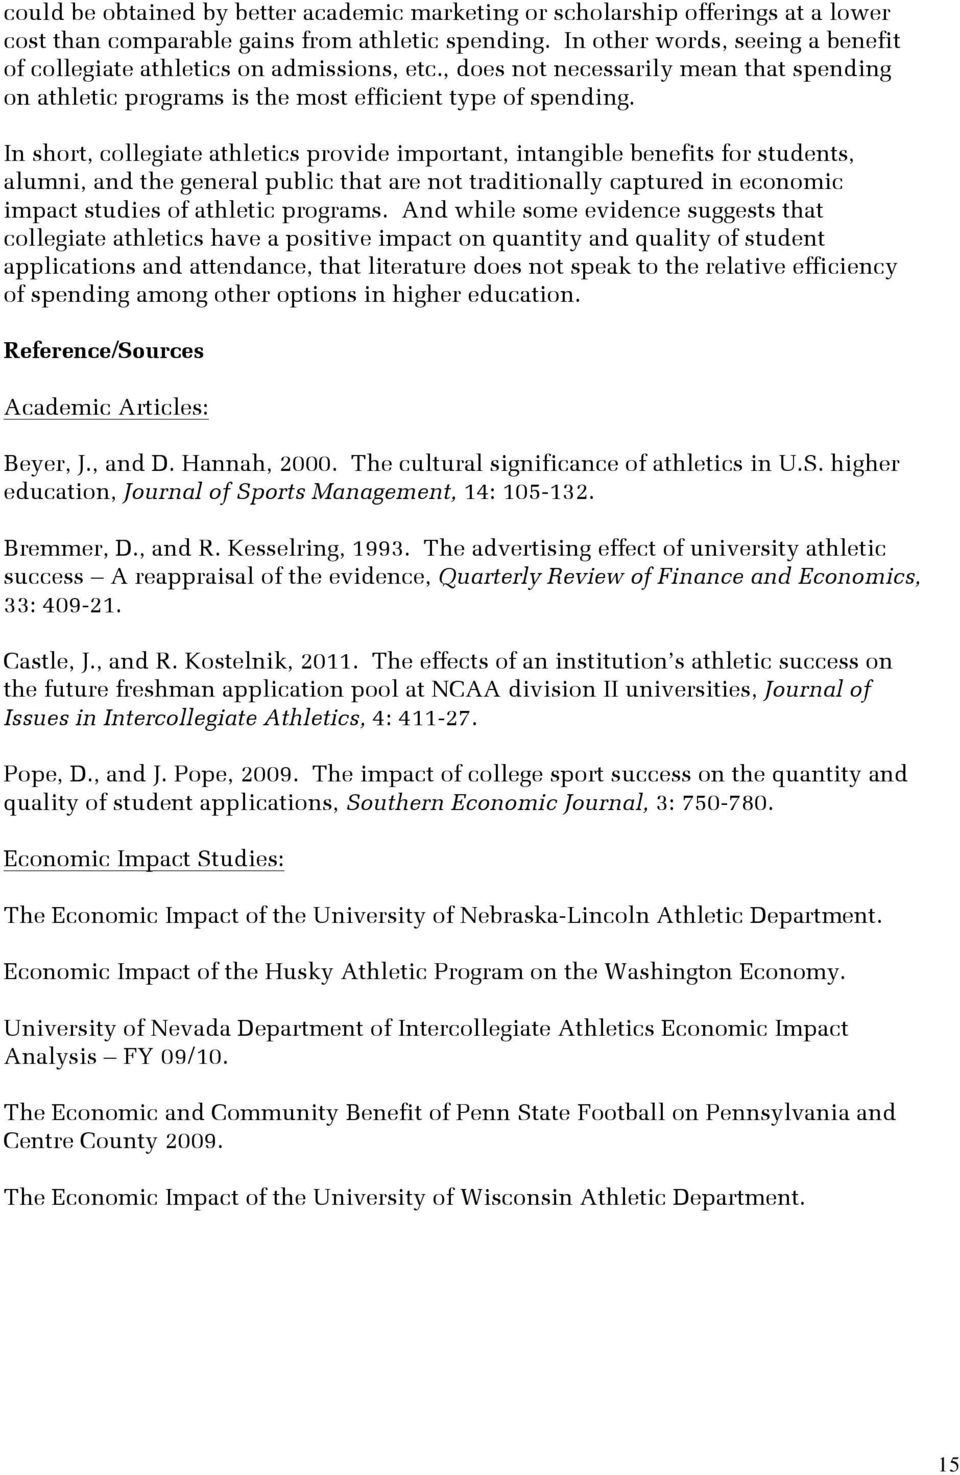 In short, collegiate athletics provide important, intangible benefits for students, alumni, and the general public that are not traditionally captured in economic impact studies of athletic programs.